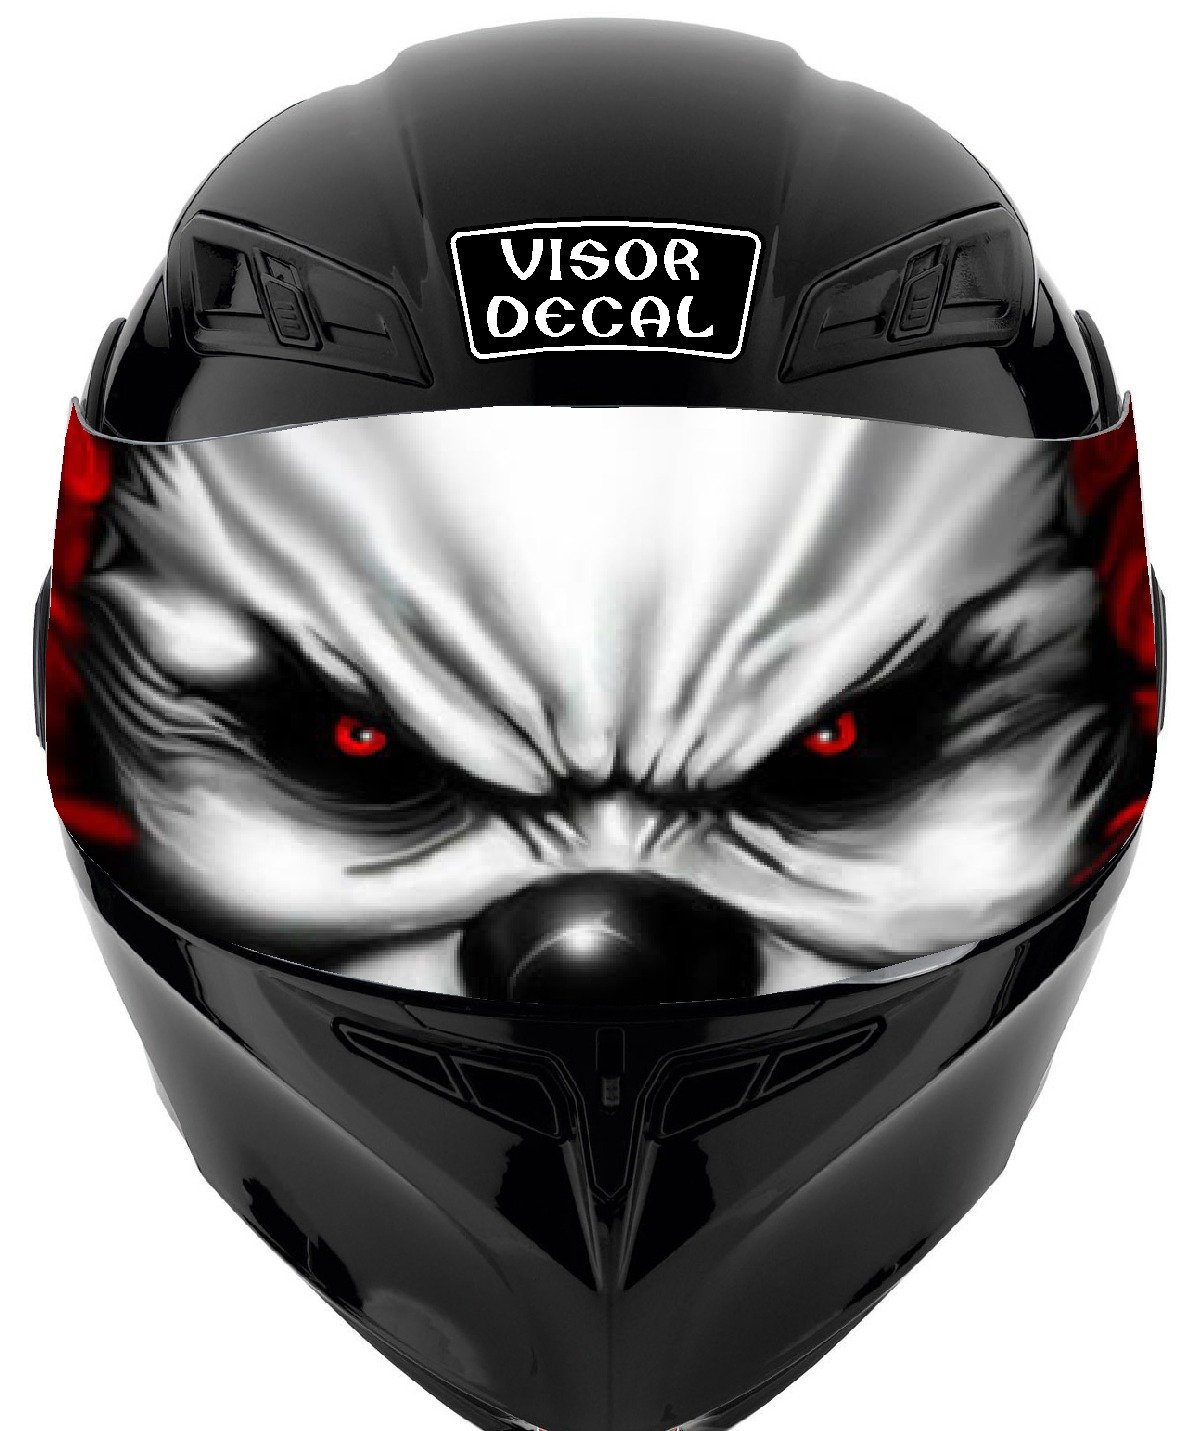 Amazon.com: V14 Evil Clown VISOR TINT DECAL Graphic Sticker Helmet Fits: Icon Shoei Bell HJC Oneal Scorpion AGV: Automotive